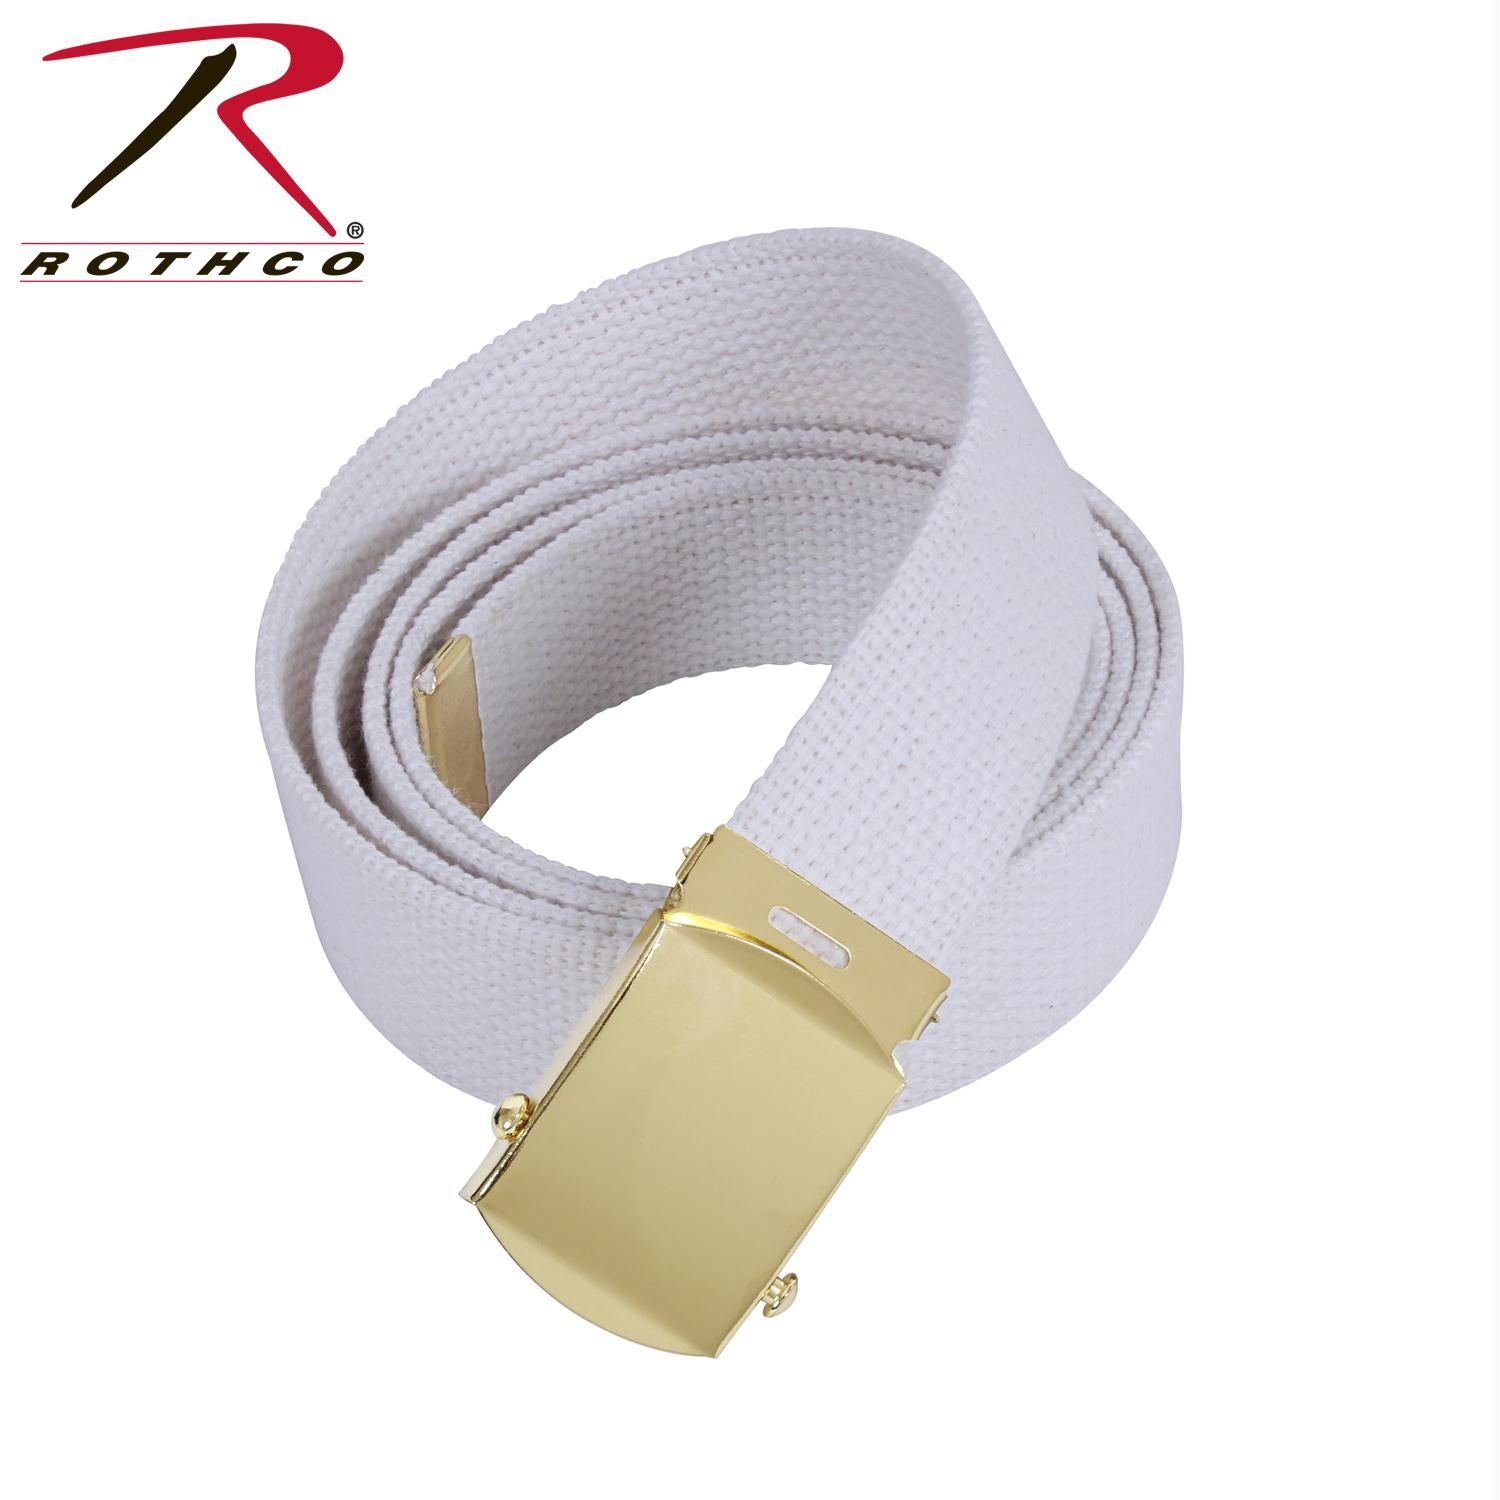 Rothco 64 Inch Military Color Web Belts - Gold / White